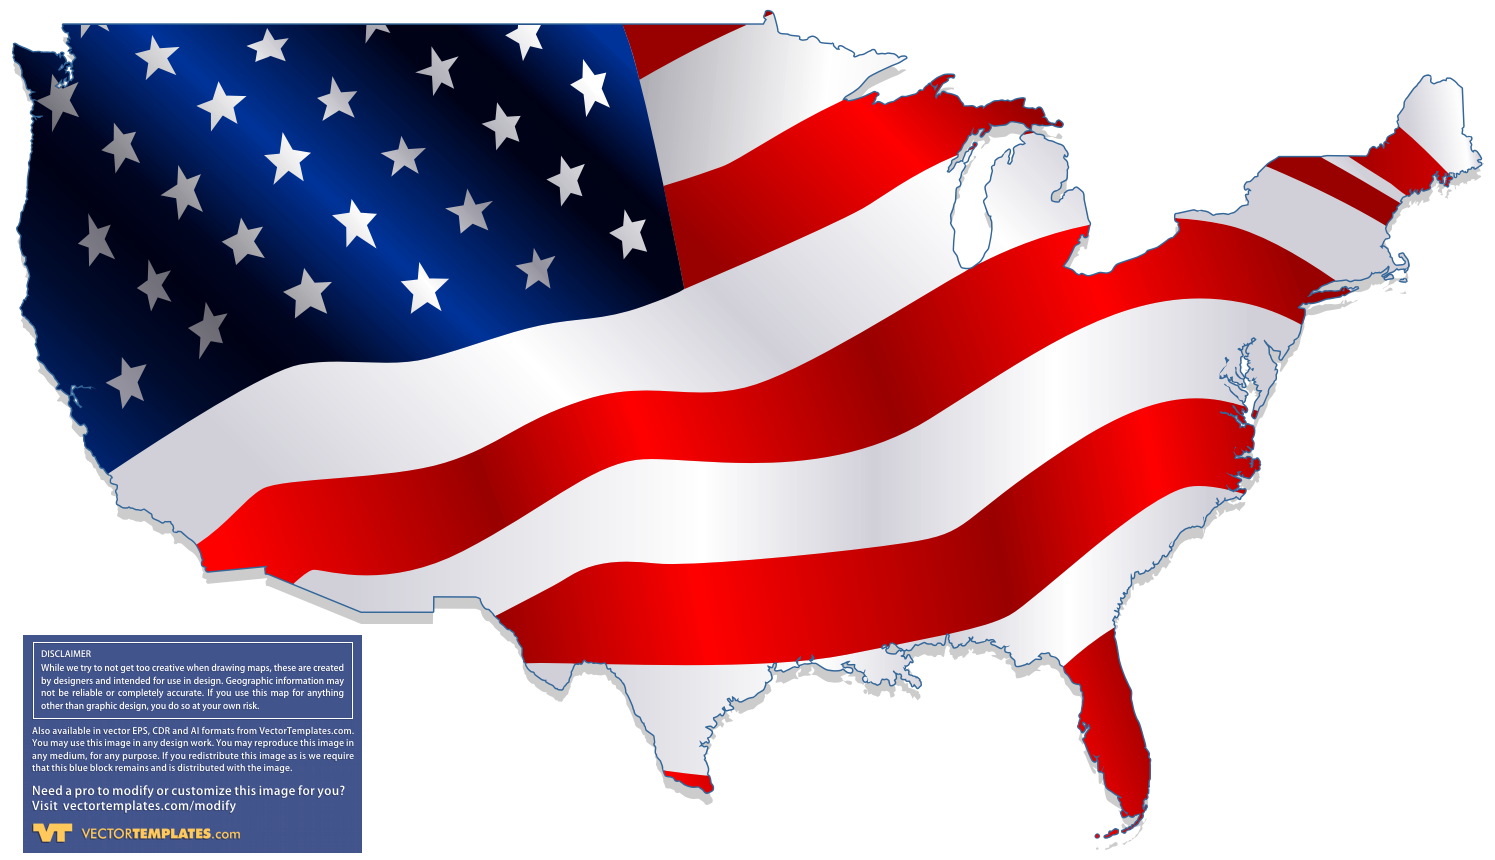 united states png hd transparent united states hdpng images pluspng united states png hd us map vector art free best hd outlinegif united states outline